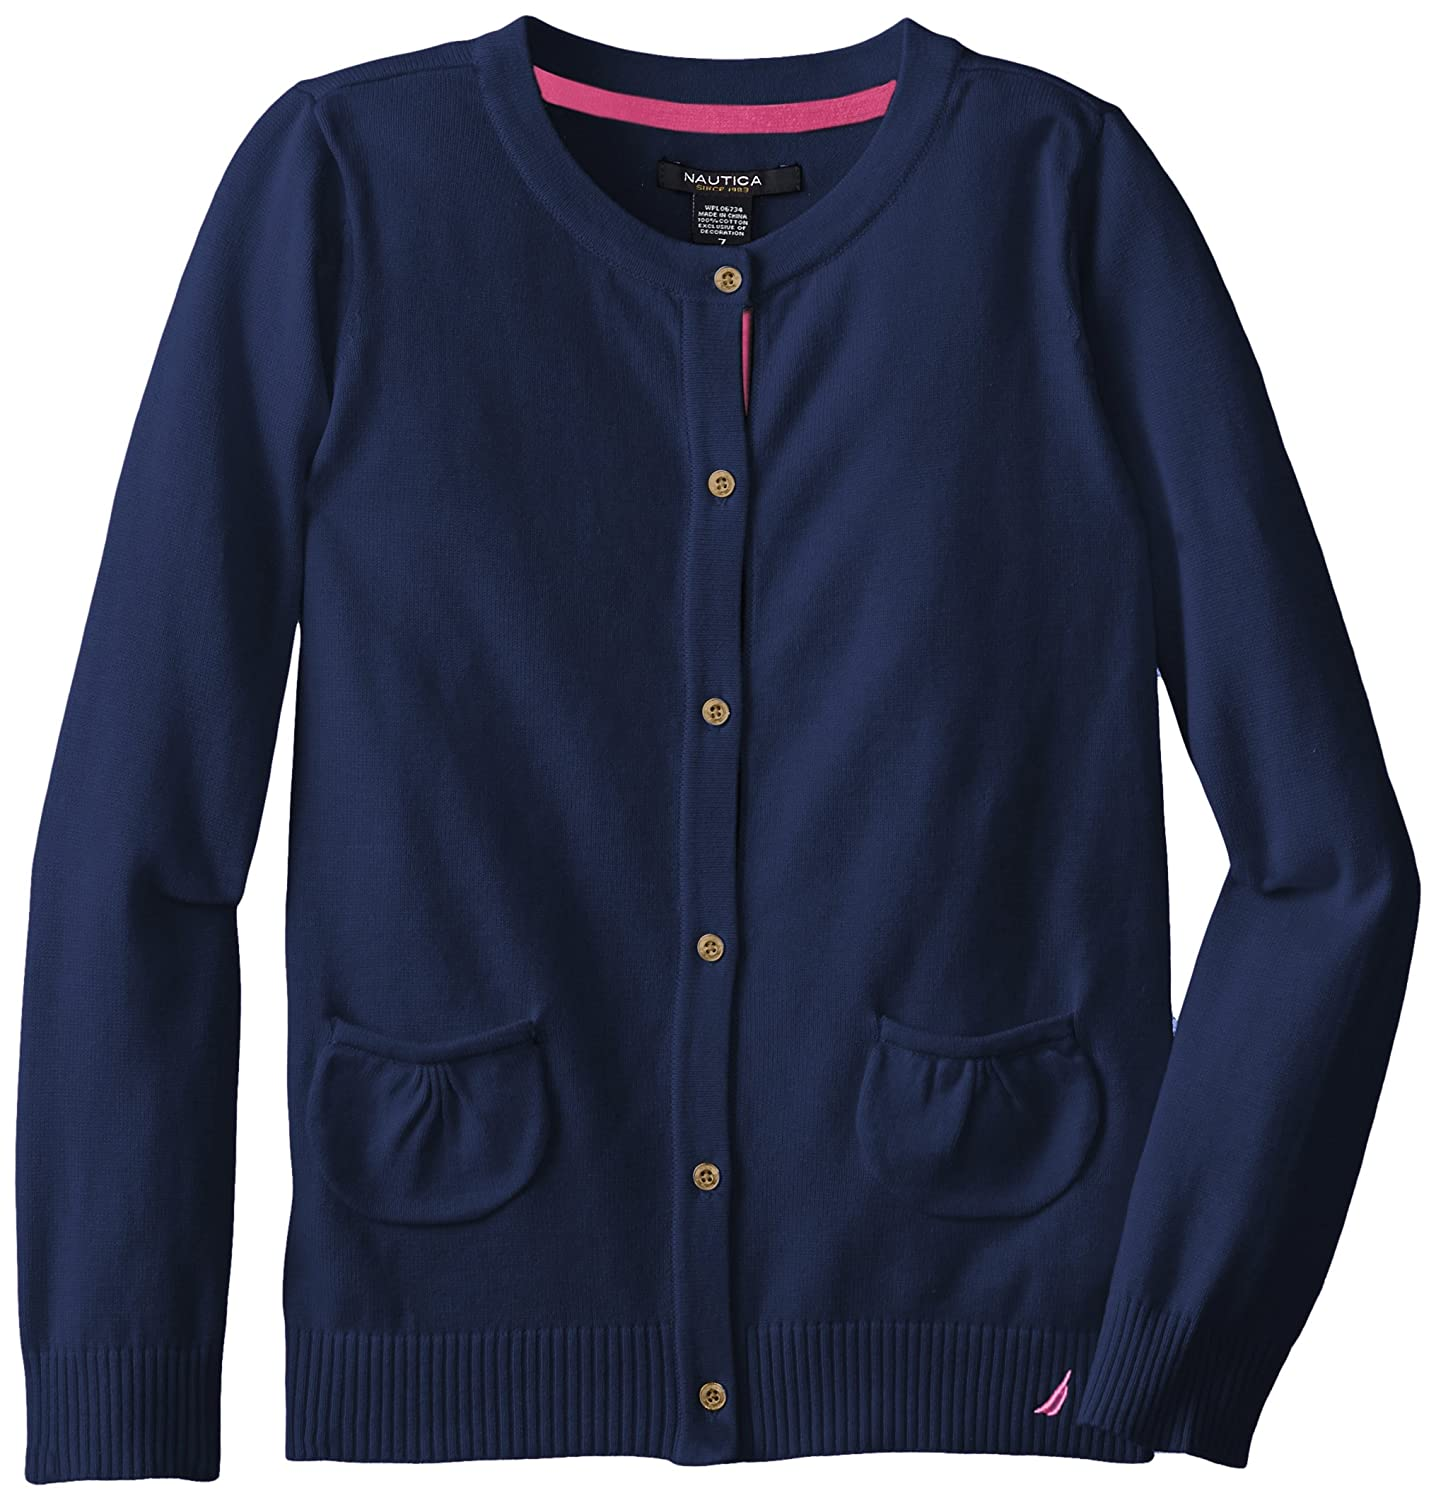 Nautica Girls Jersey Cardigan Sweater with Pockets